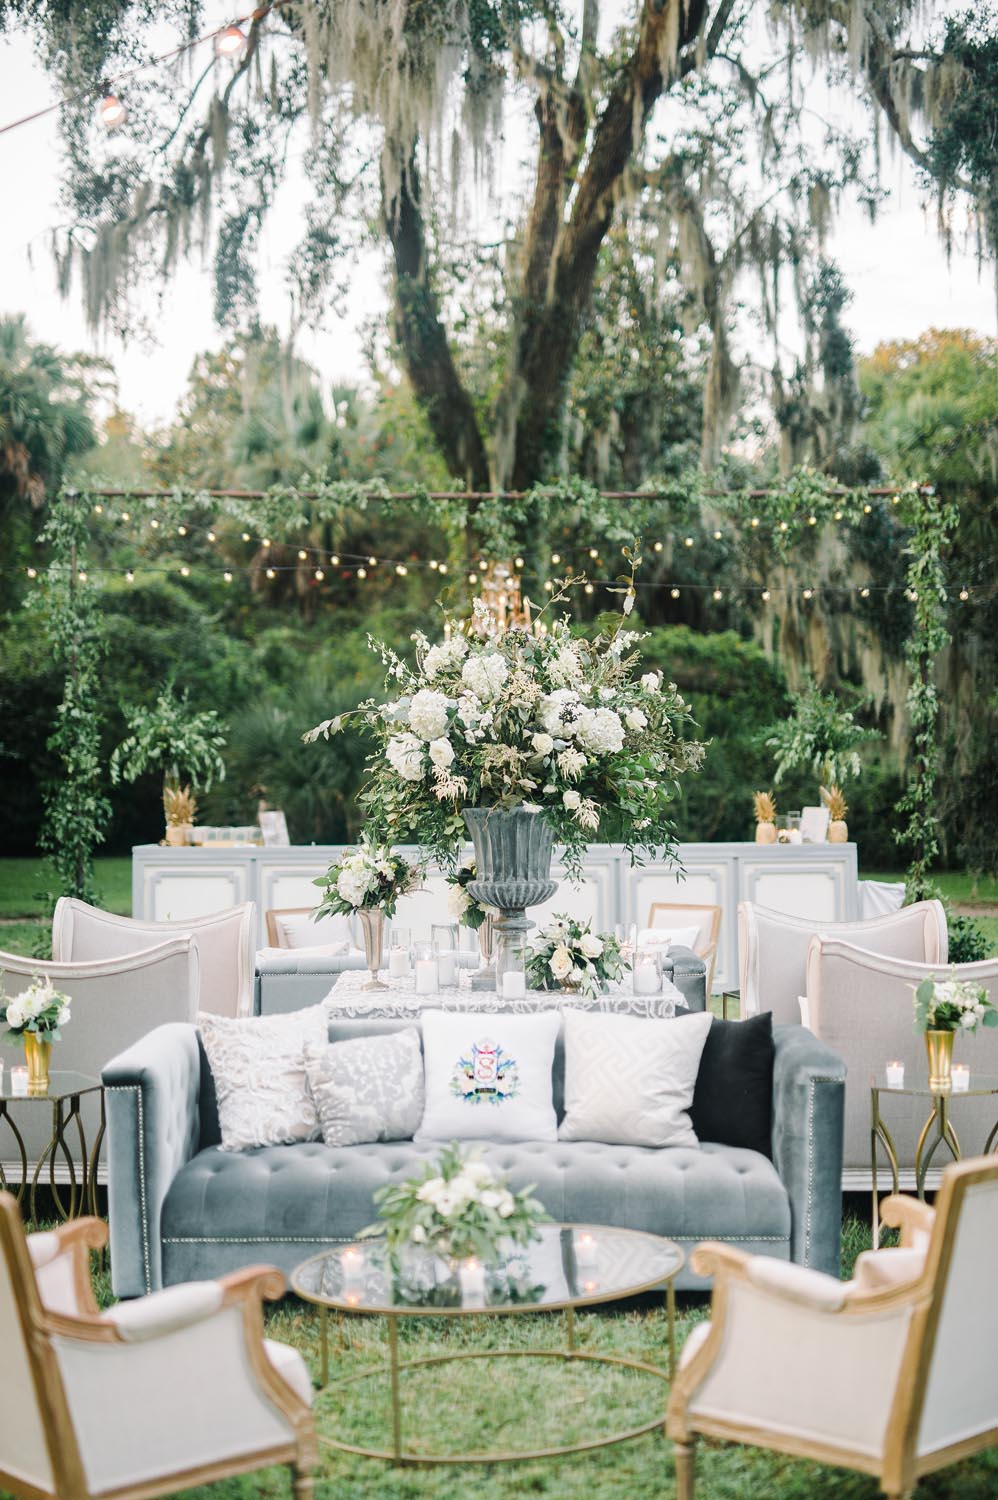 They started with a bold custom created crest for this classic southern wedding. Wedding planning and design by A Charleston Bride